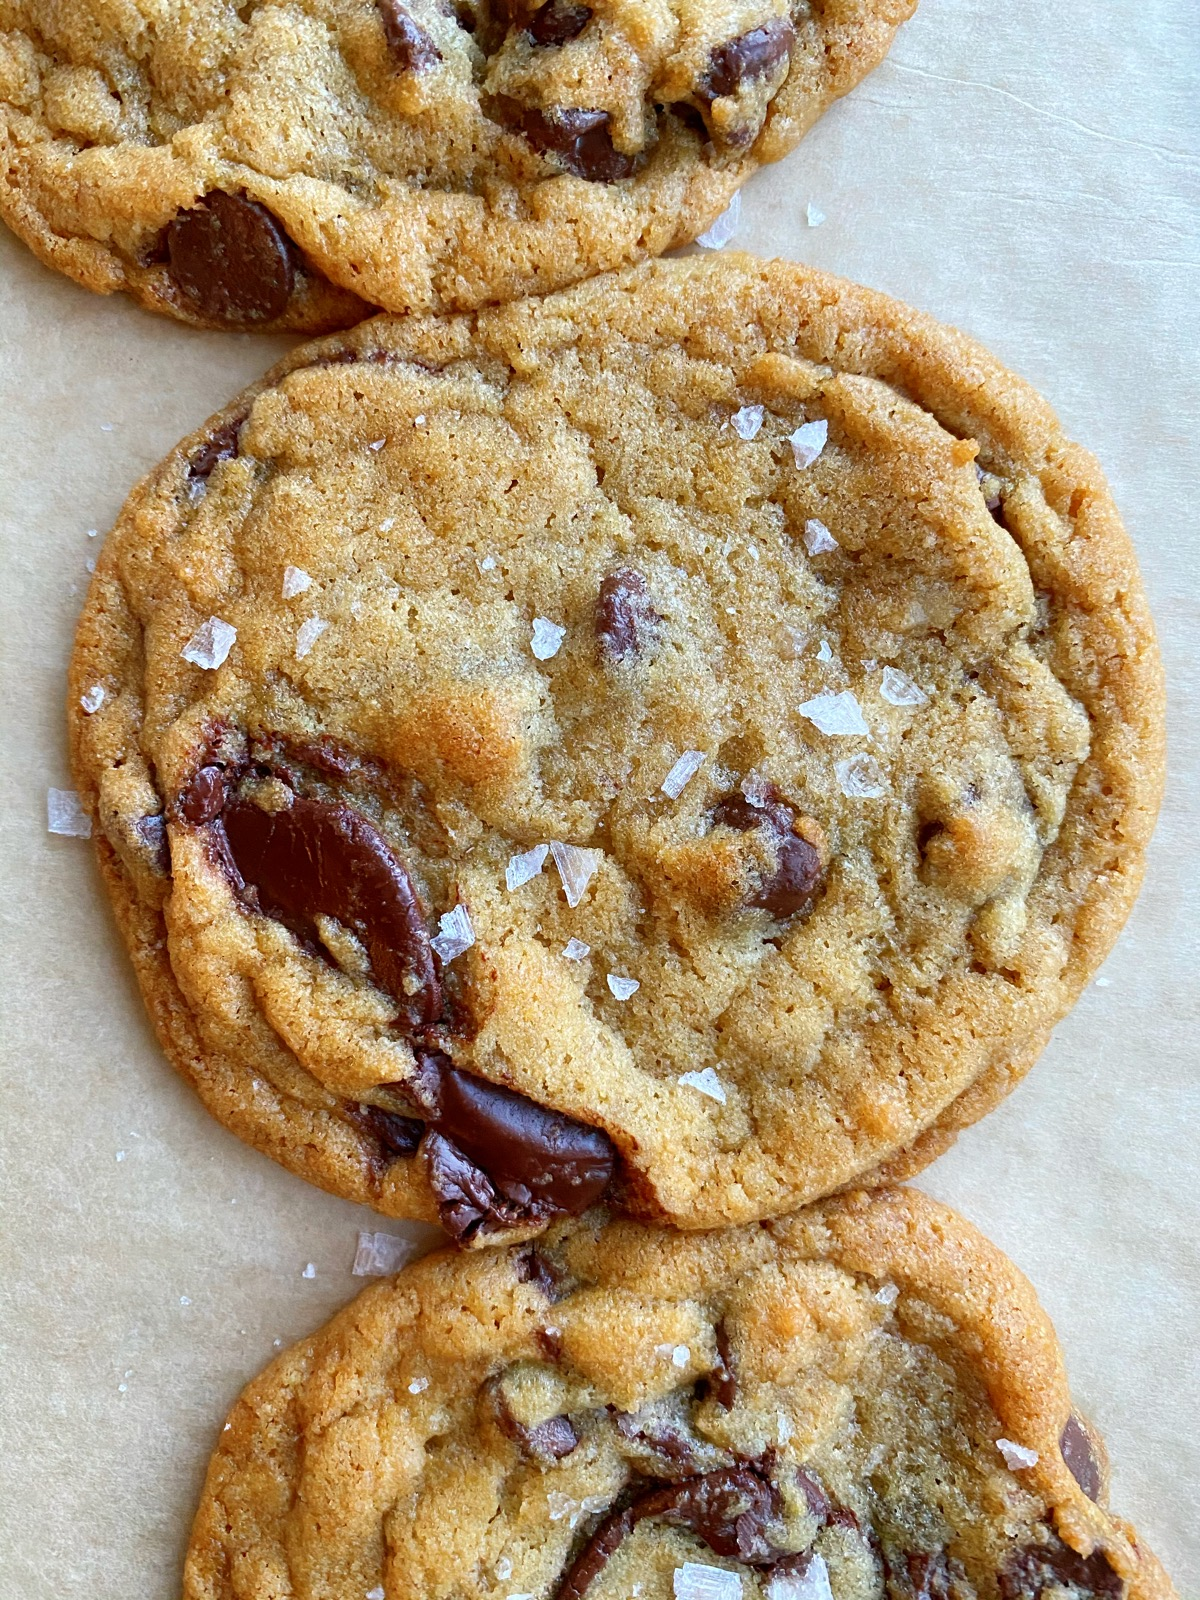 Magnolia Table Chocolate Chip Cookies! Chocolate chip cookies from Joanna Gaines' book: Magnolia Table but with a few changes.